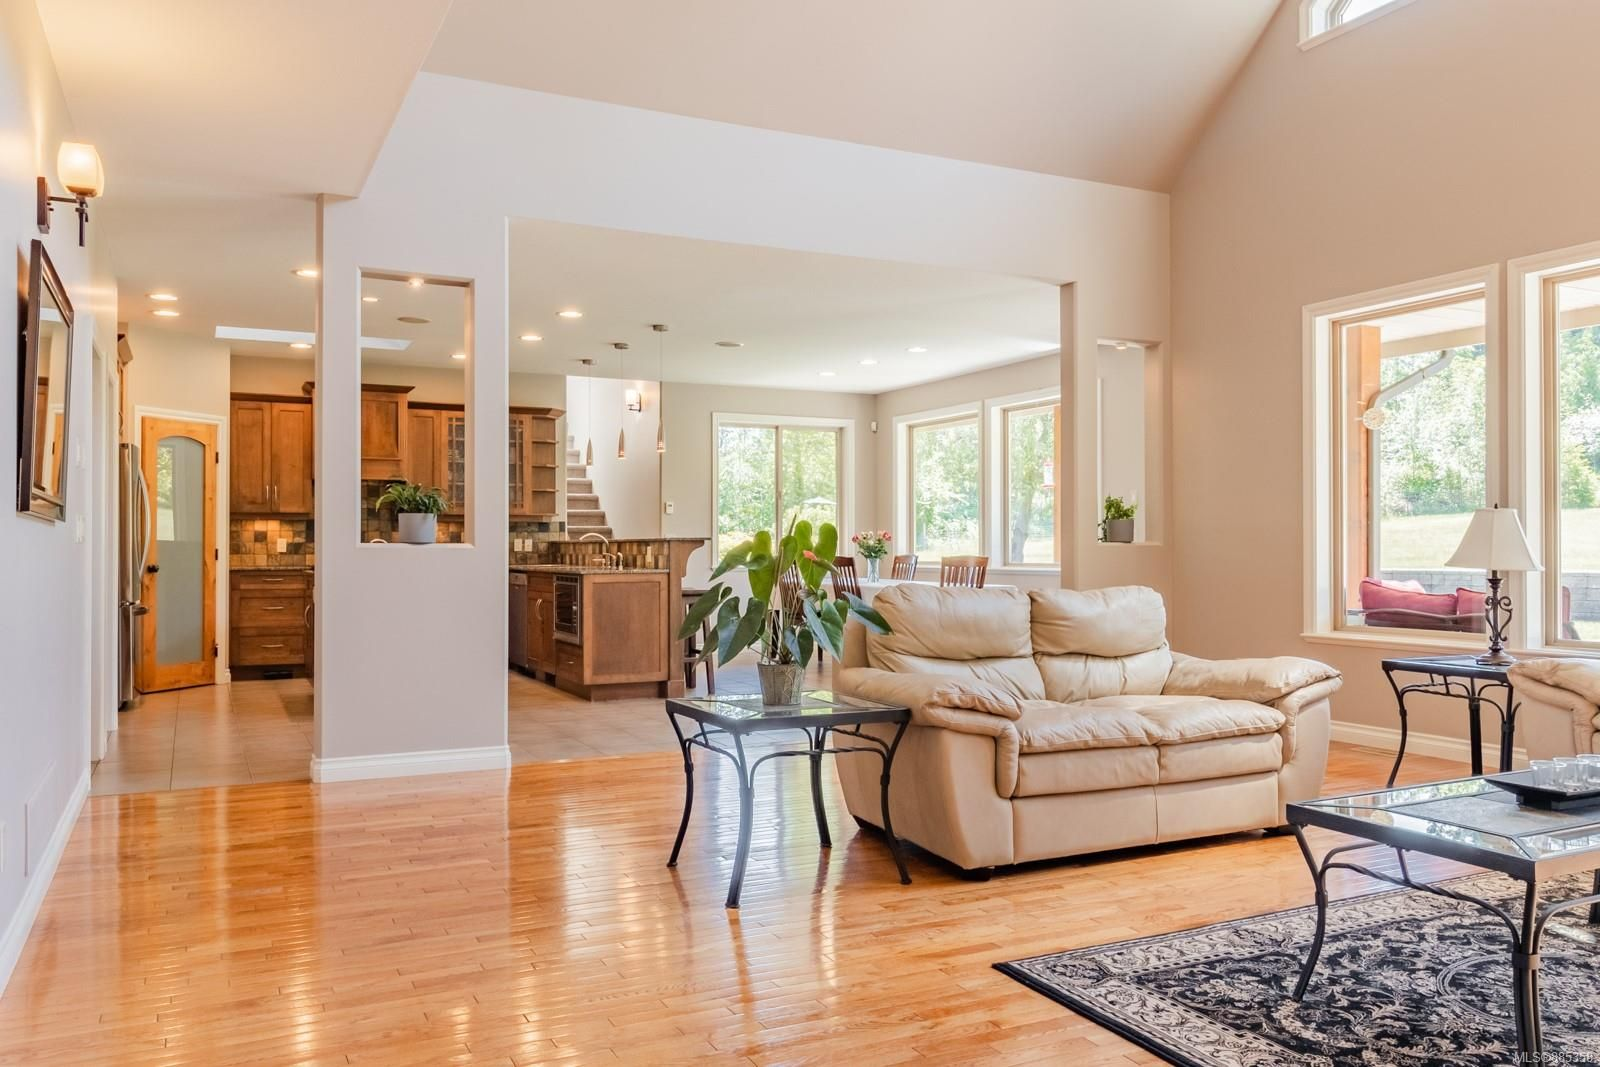 Photo 13: Photos: 2850 Peters Rd in : PQ Qualicum Beach House for sale (Parksville/Qualicum)  : MLS®# 885358